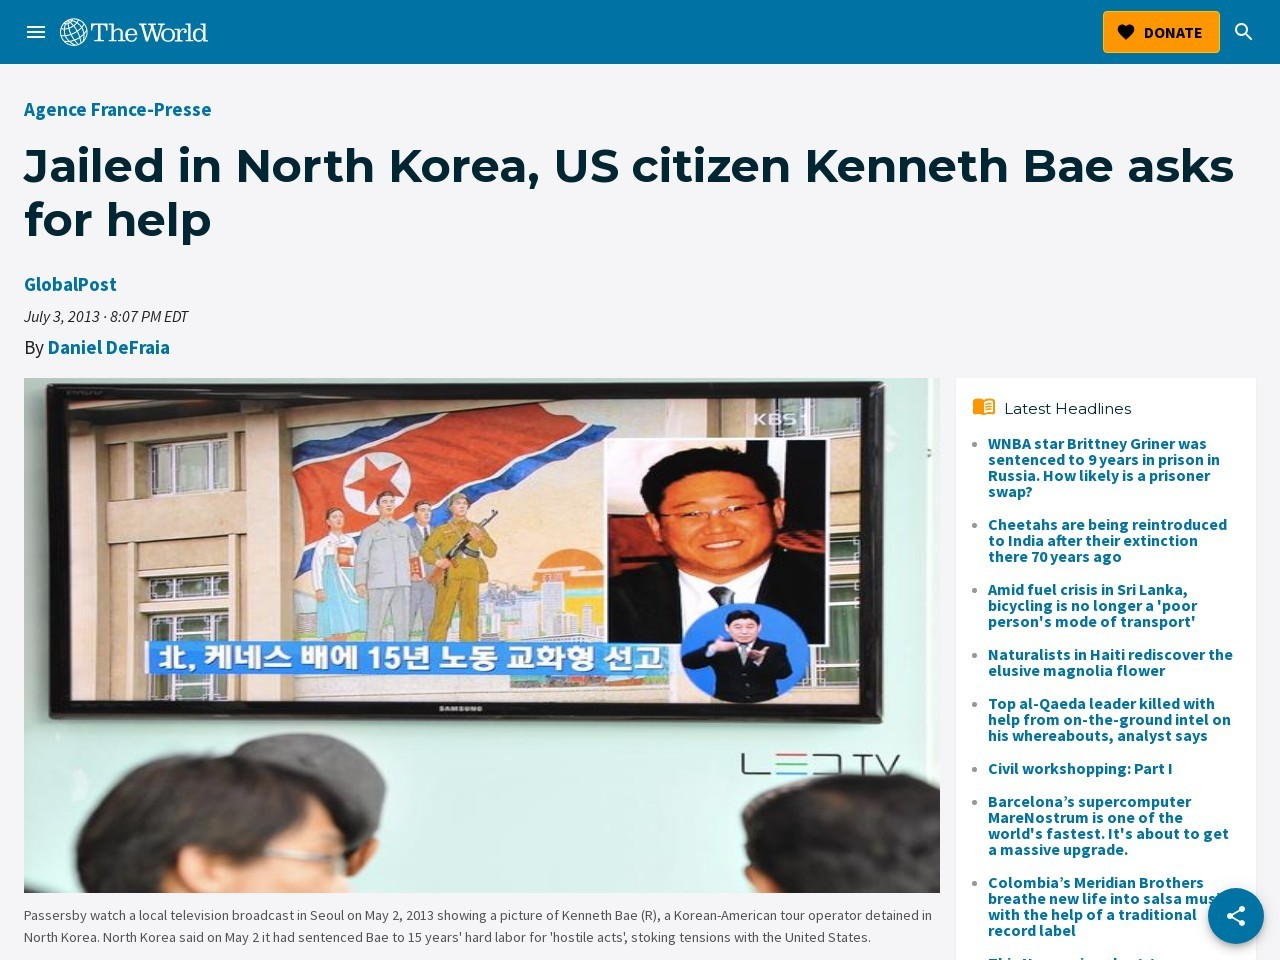 Jailed in North Korea, US citizen Kenneth Bae asks for help